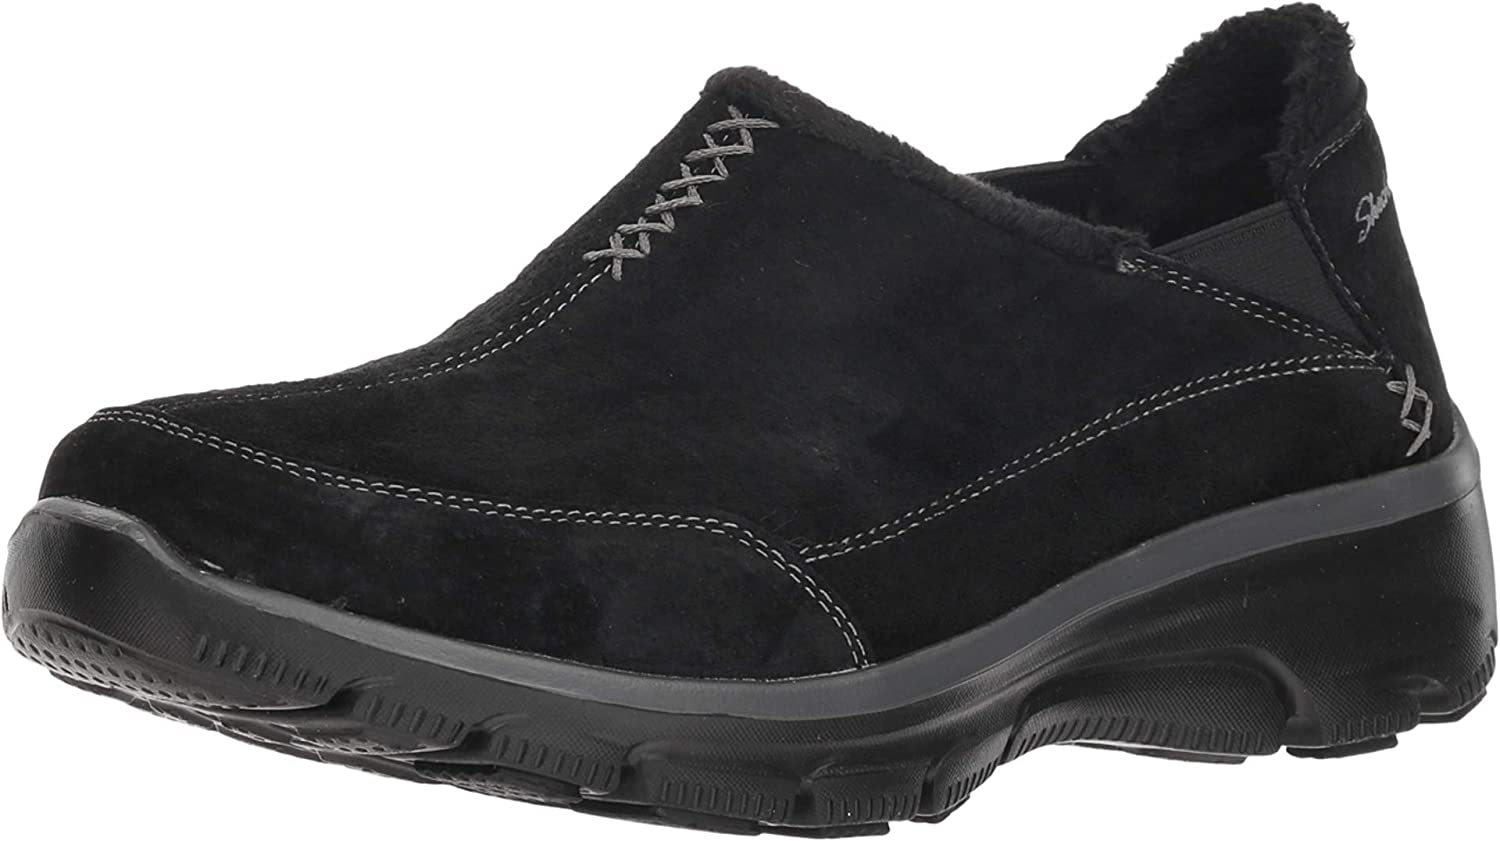 Skechers Women's Easy Going-Hive-Twin Gore Shootie with Faux Fur Trim Loafer